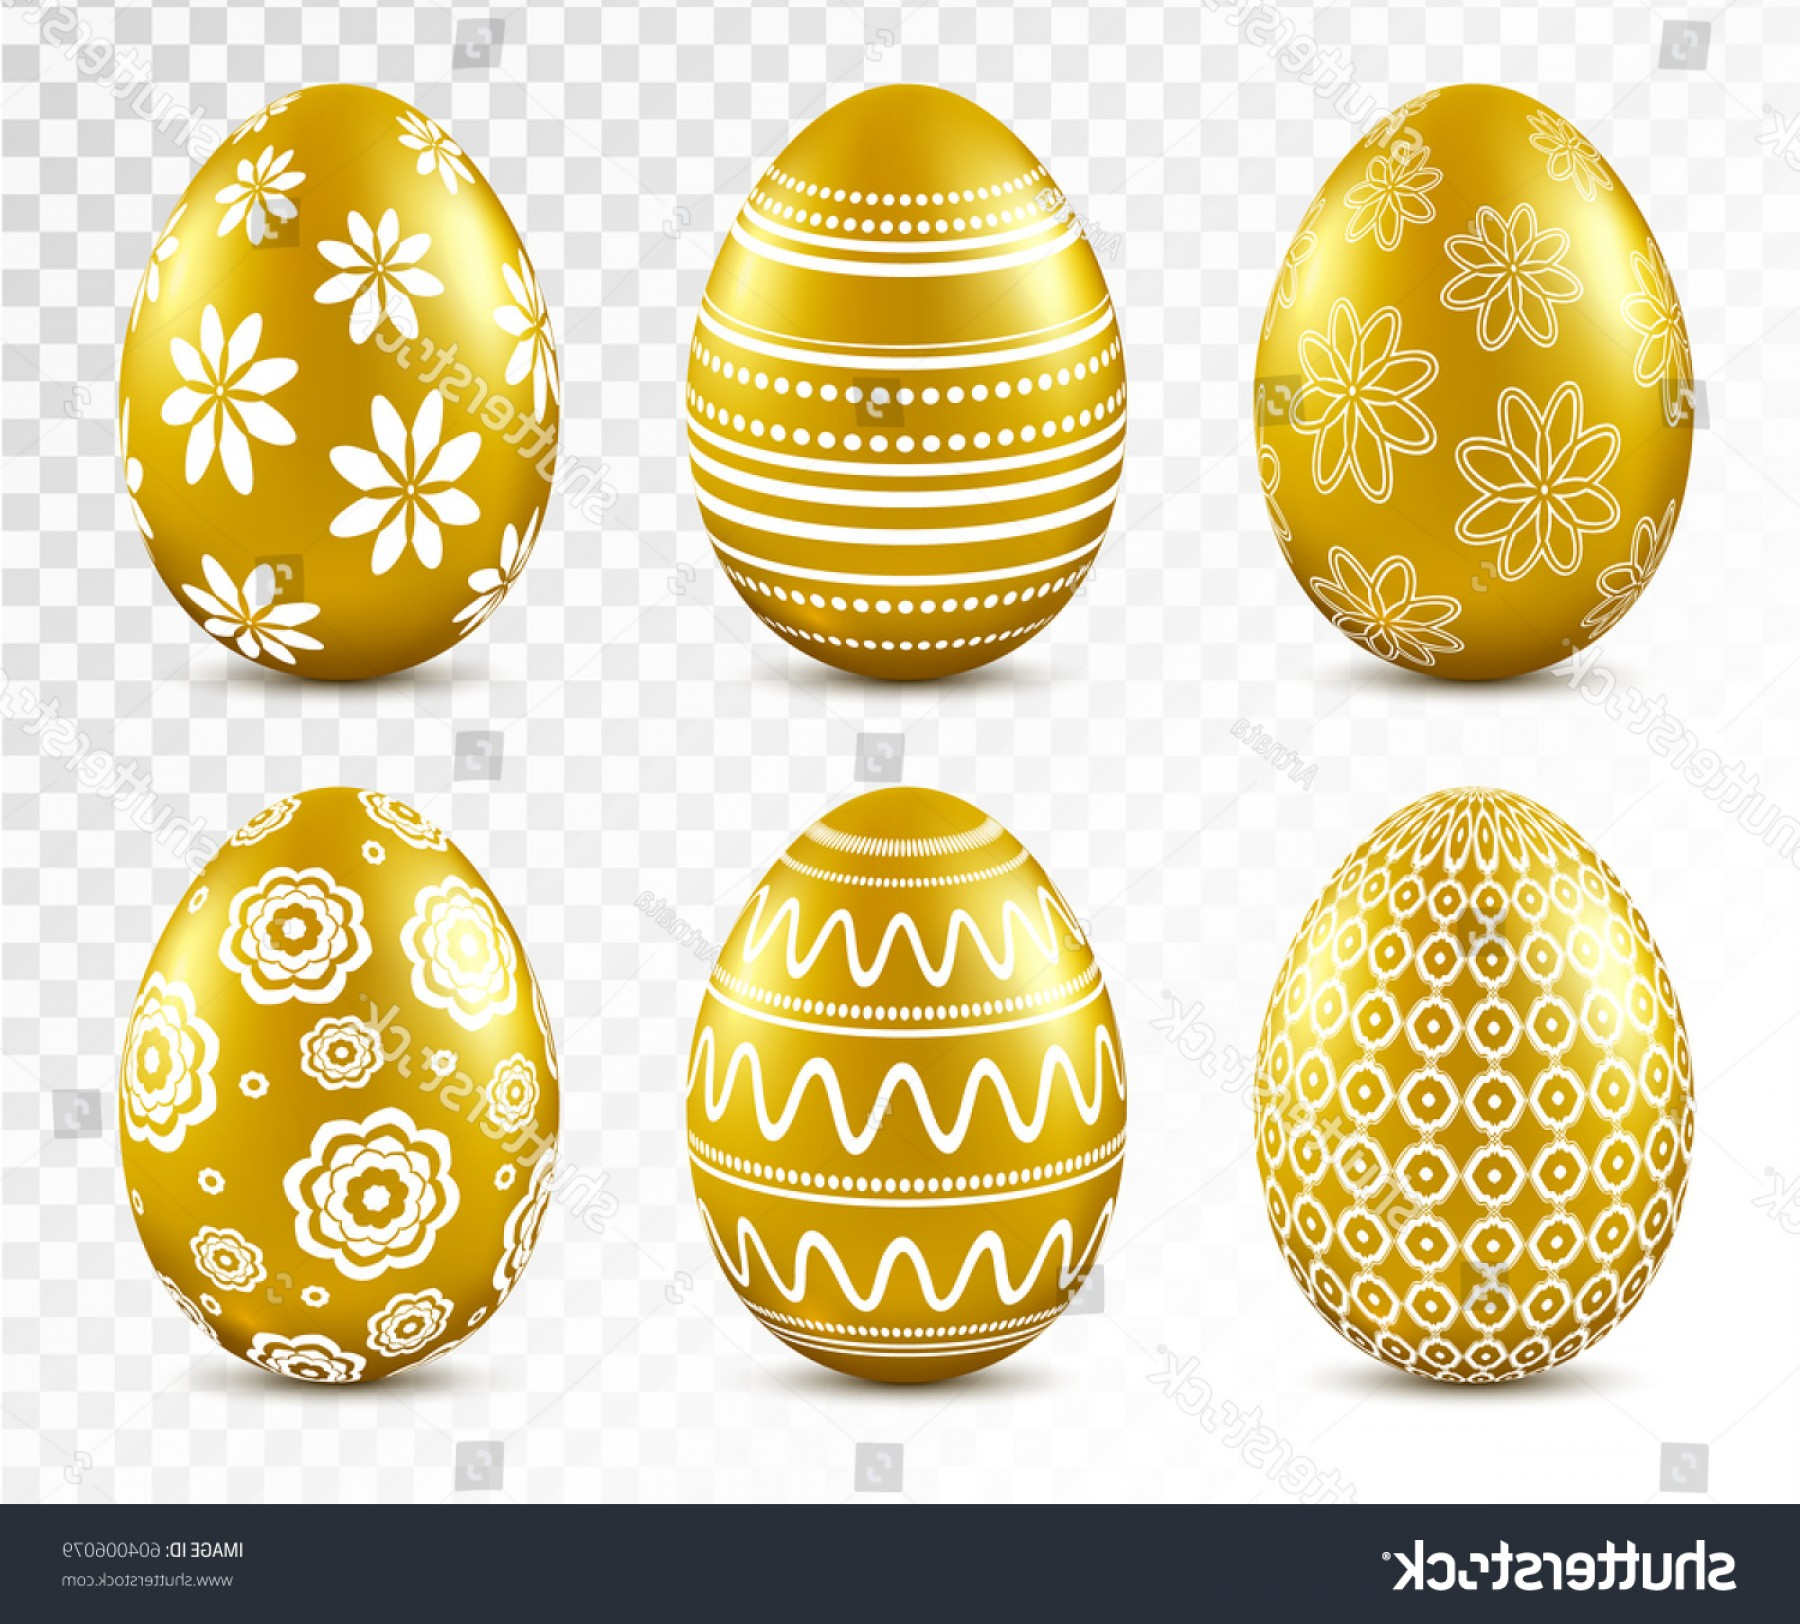 Easter Vector No Background: Gold Easter Eggs Patten Set Isolated